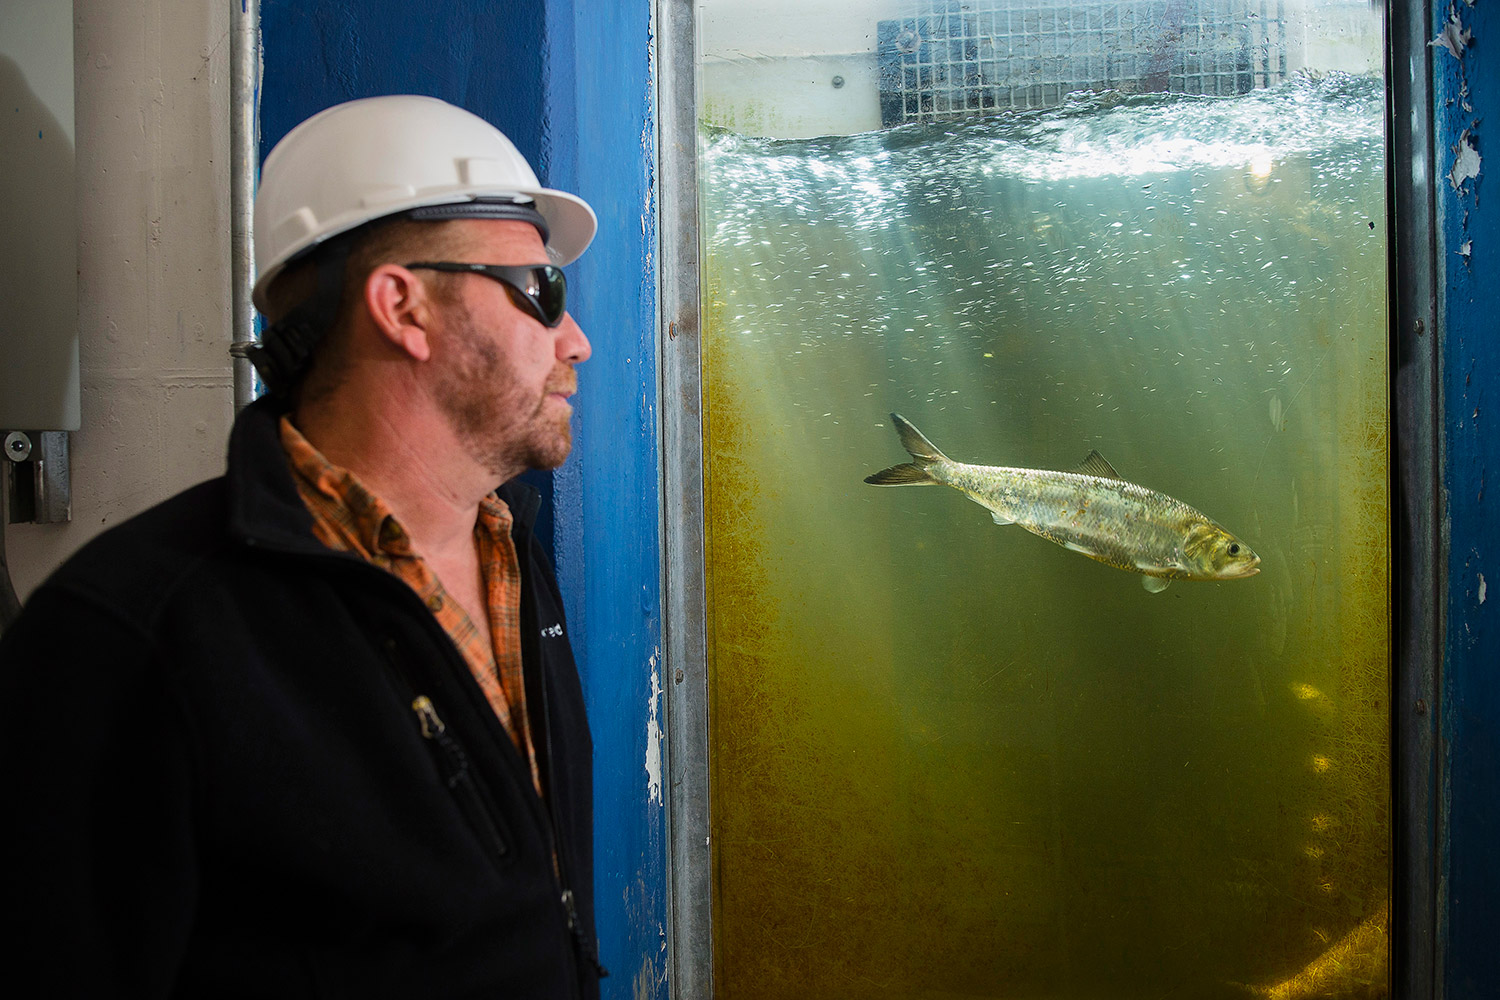 Freshwater aquarium fish crossword - On The Job Fish Biologist Matt Leblanc Helps Manage A Resource Portland Press Herald